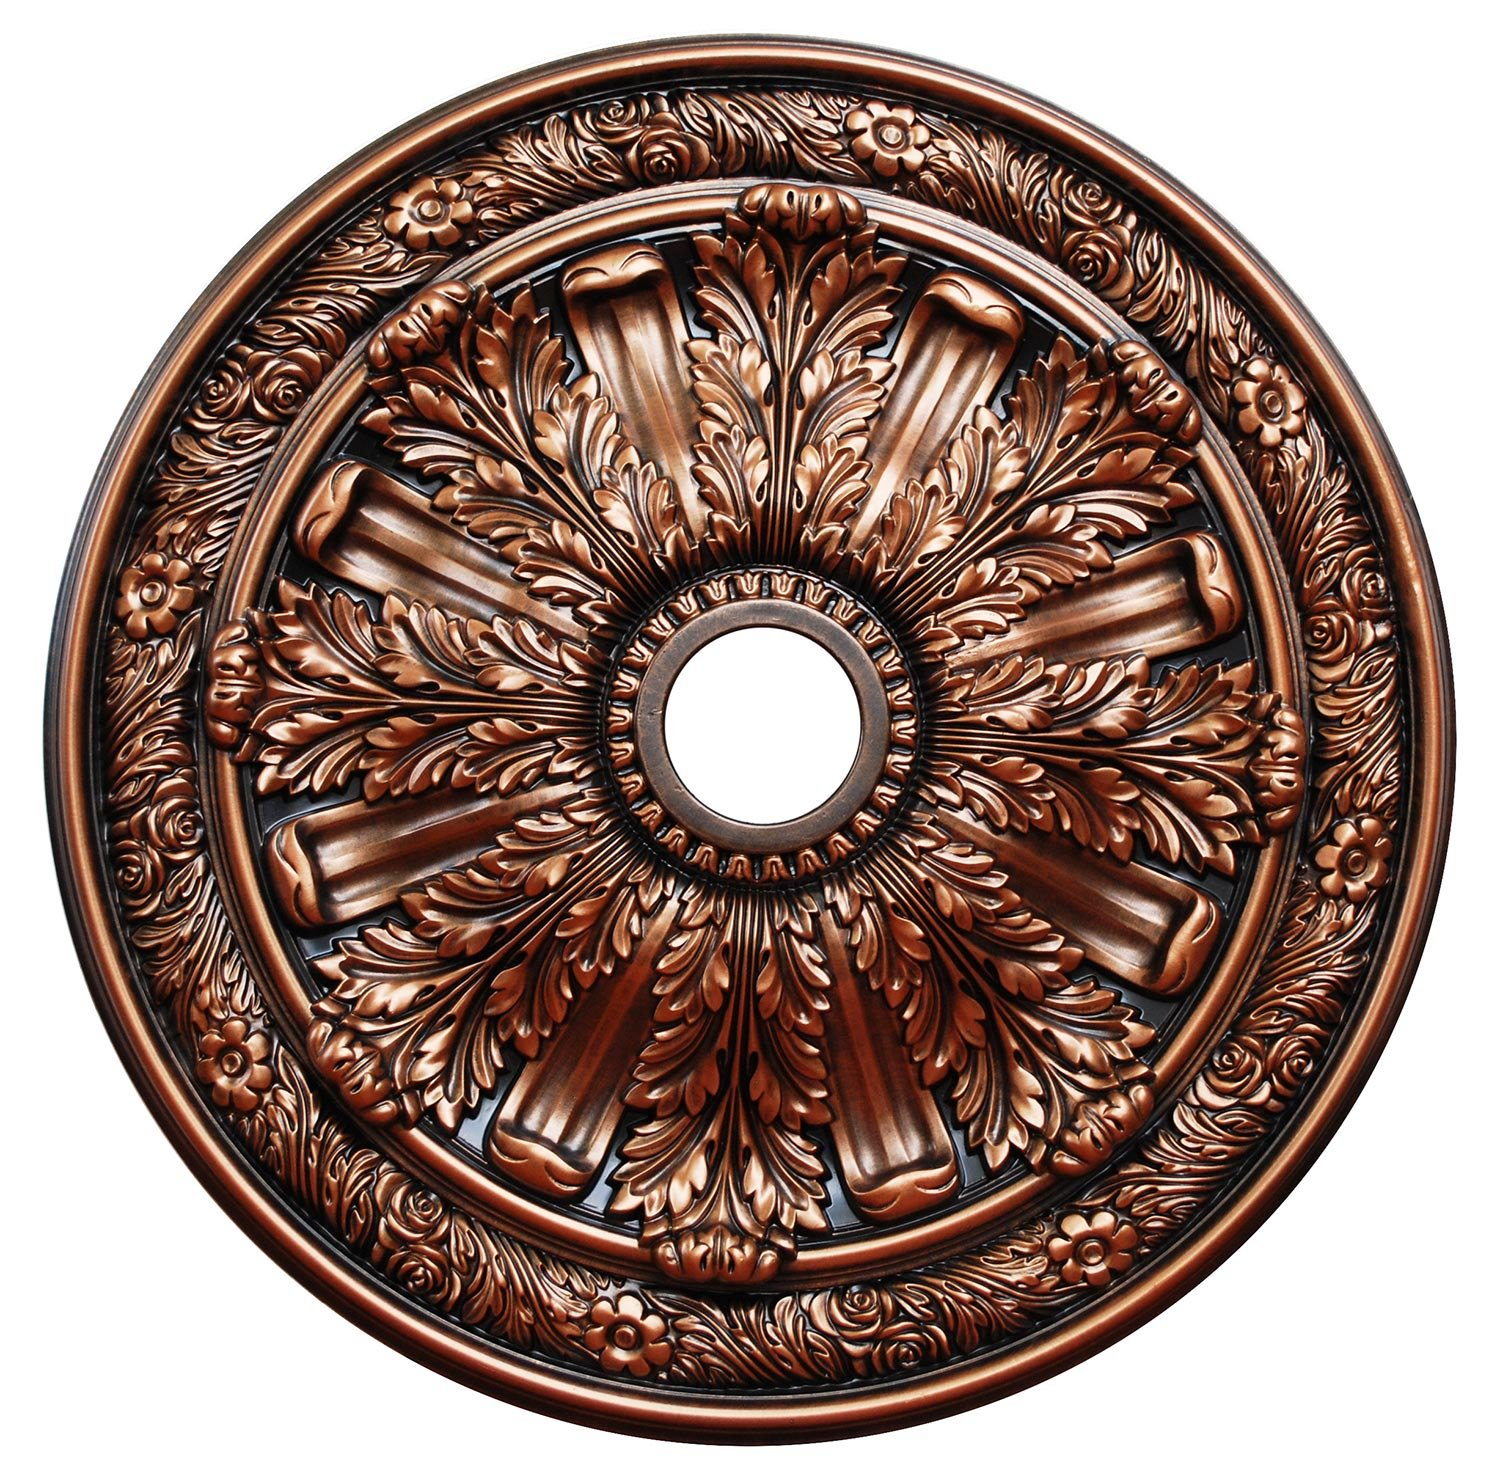 Fine Art Deco ''Bronzed Acanthus'' Hand Painted Ceiling Medallion 30 In. Finished in Antique Bronze by Fine Art Deco